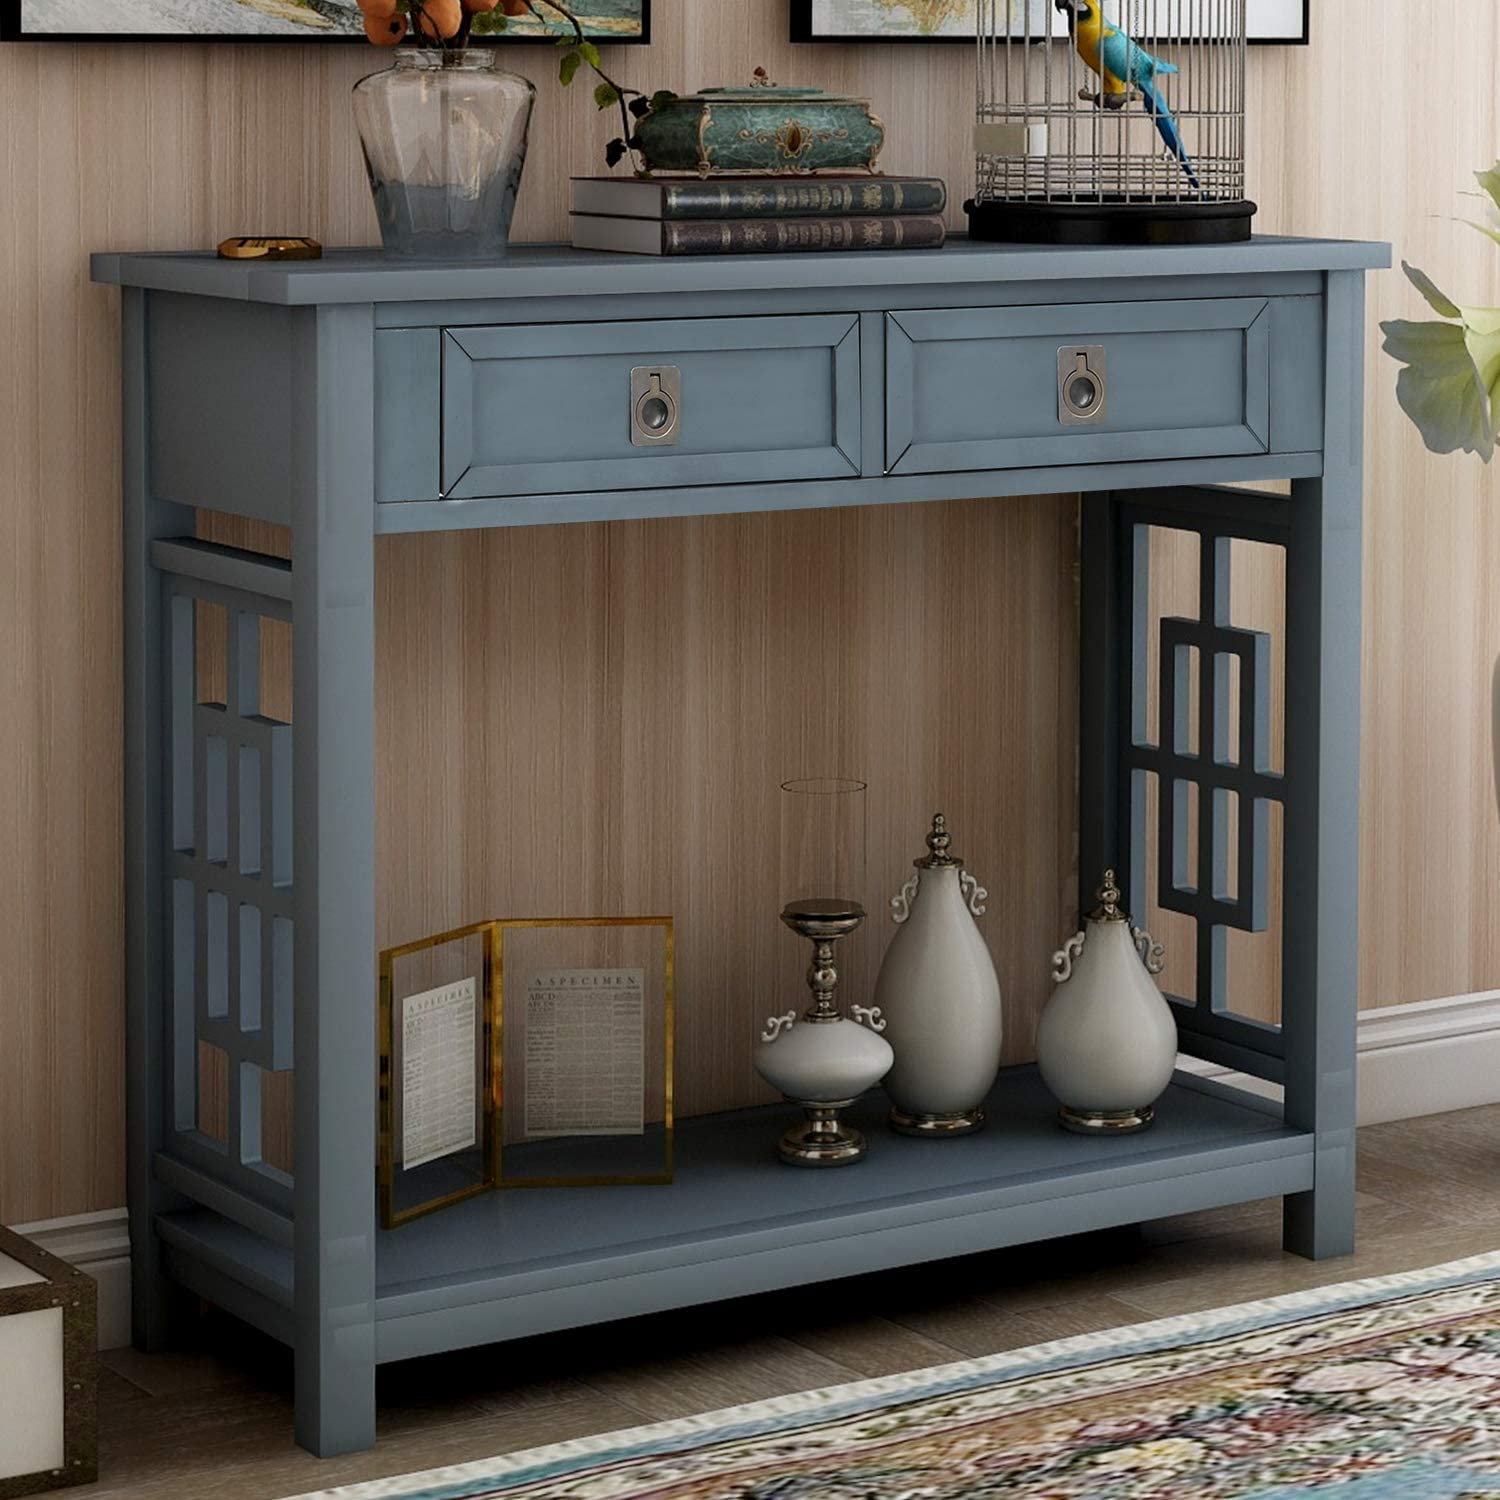 Console Outlet Max 48% OFF SALE Sofa Table with 2 Drawers and Acc Shelf Bottom Entryway